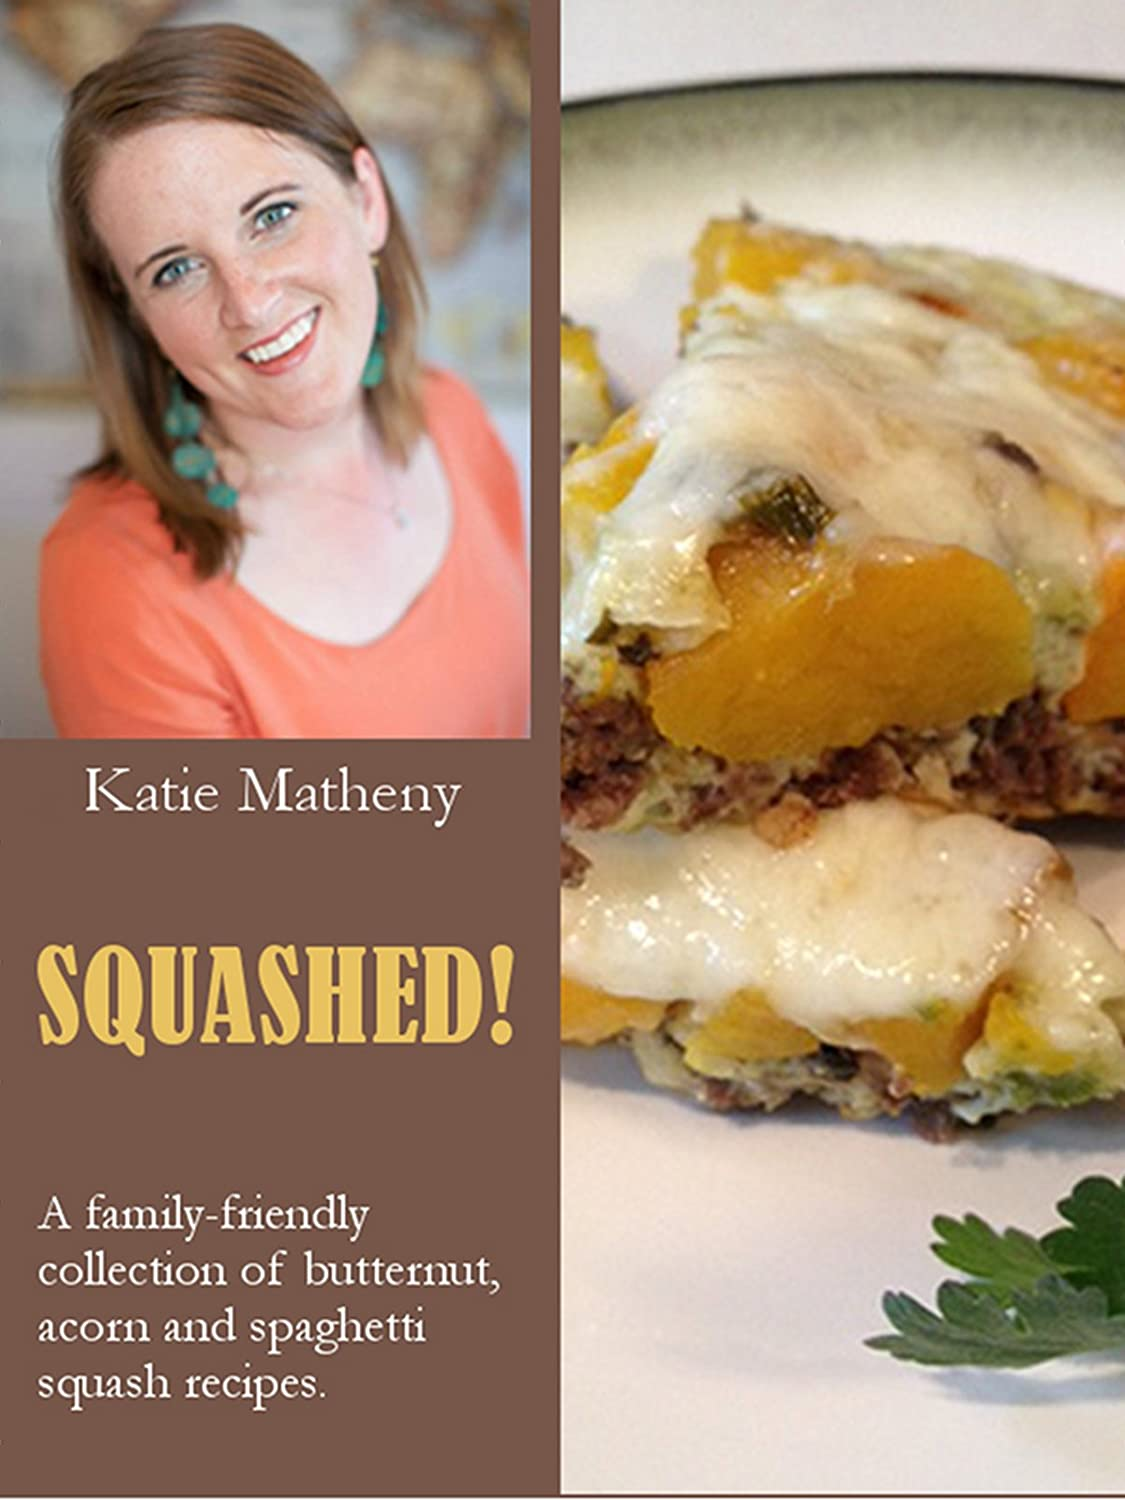 http://www.amazon.com/SQUASHED-family-friendly-collection-butternut-spaghetti-ebook/dp/B00H1M0TPG/ref=as_sl_pc_ss_til?tag=lettfromahome-20&linkCode=w01&linkId=IPTCWMZGSUIRFMVL&creativeASIN=B00H1M0TPG